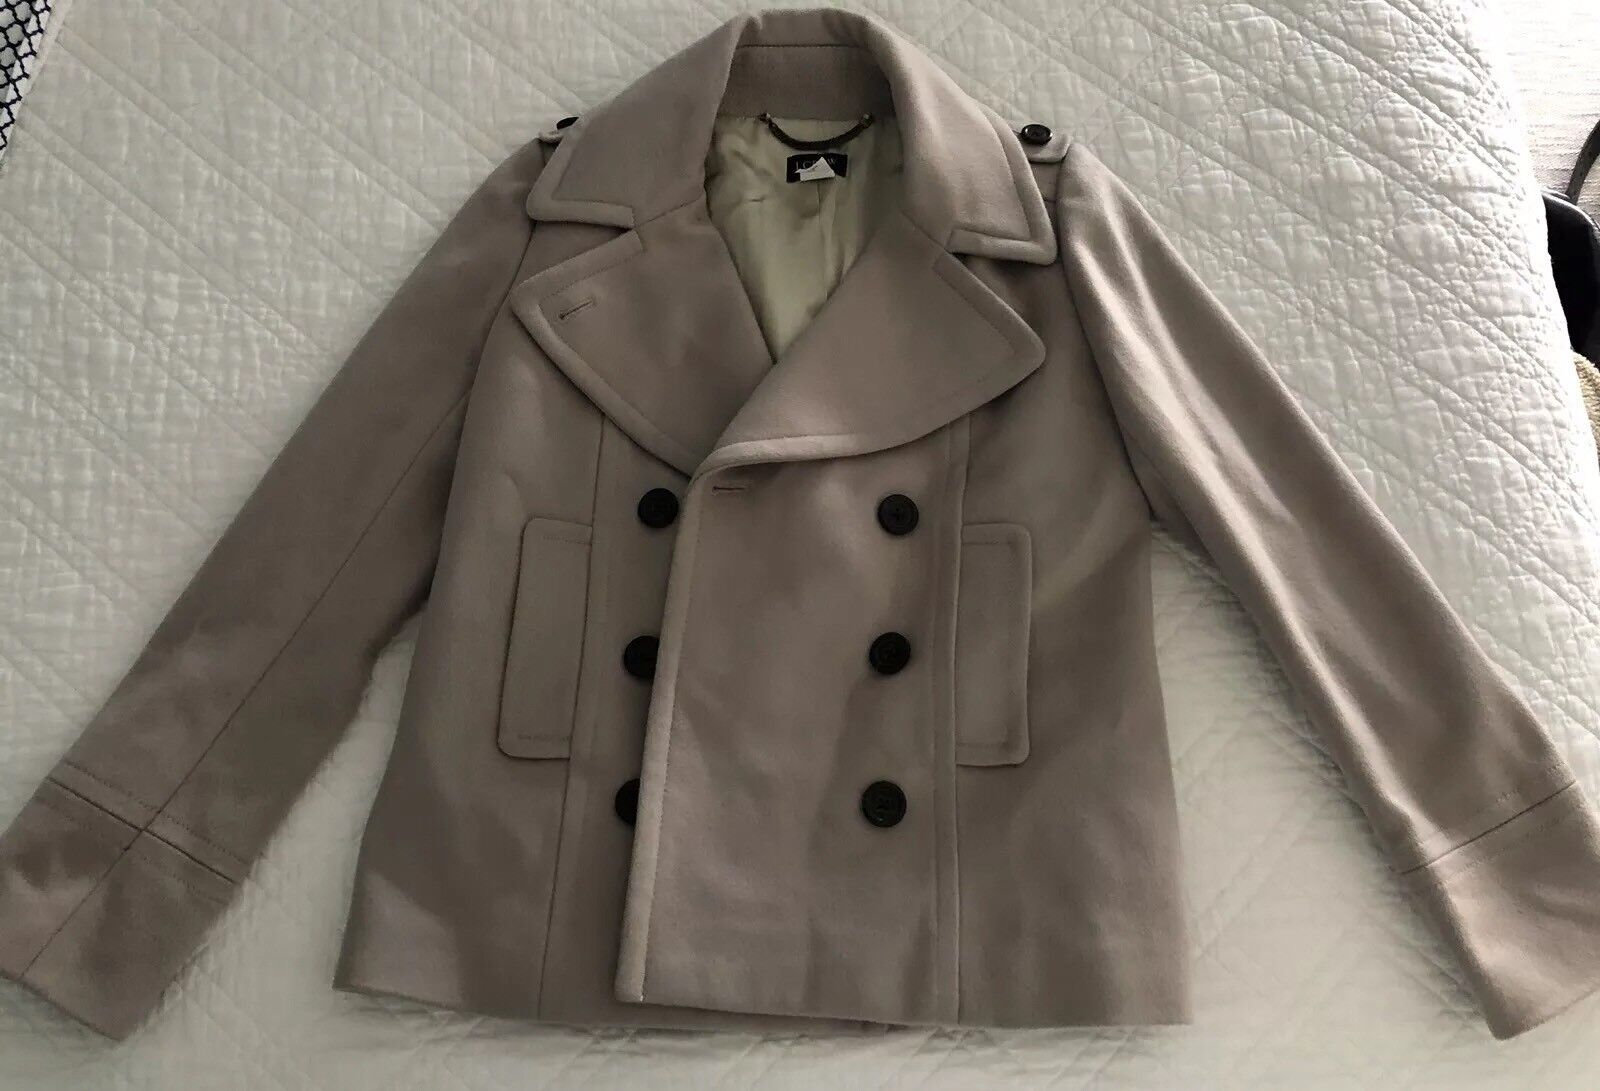 J.CREW Tan Beige Wool Peacoat Stadium Cloth by Nello Gori Coat Women's Size 2